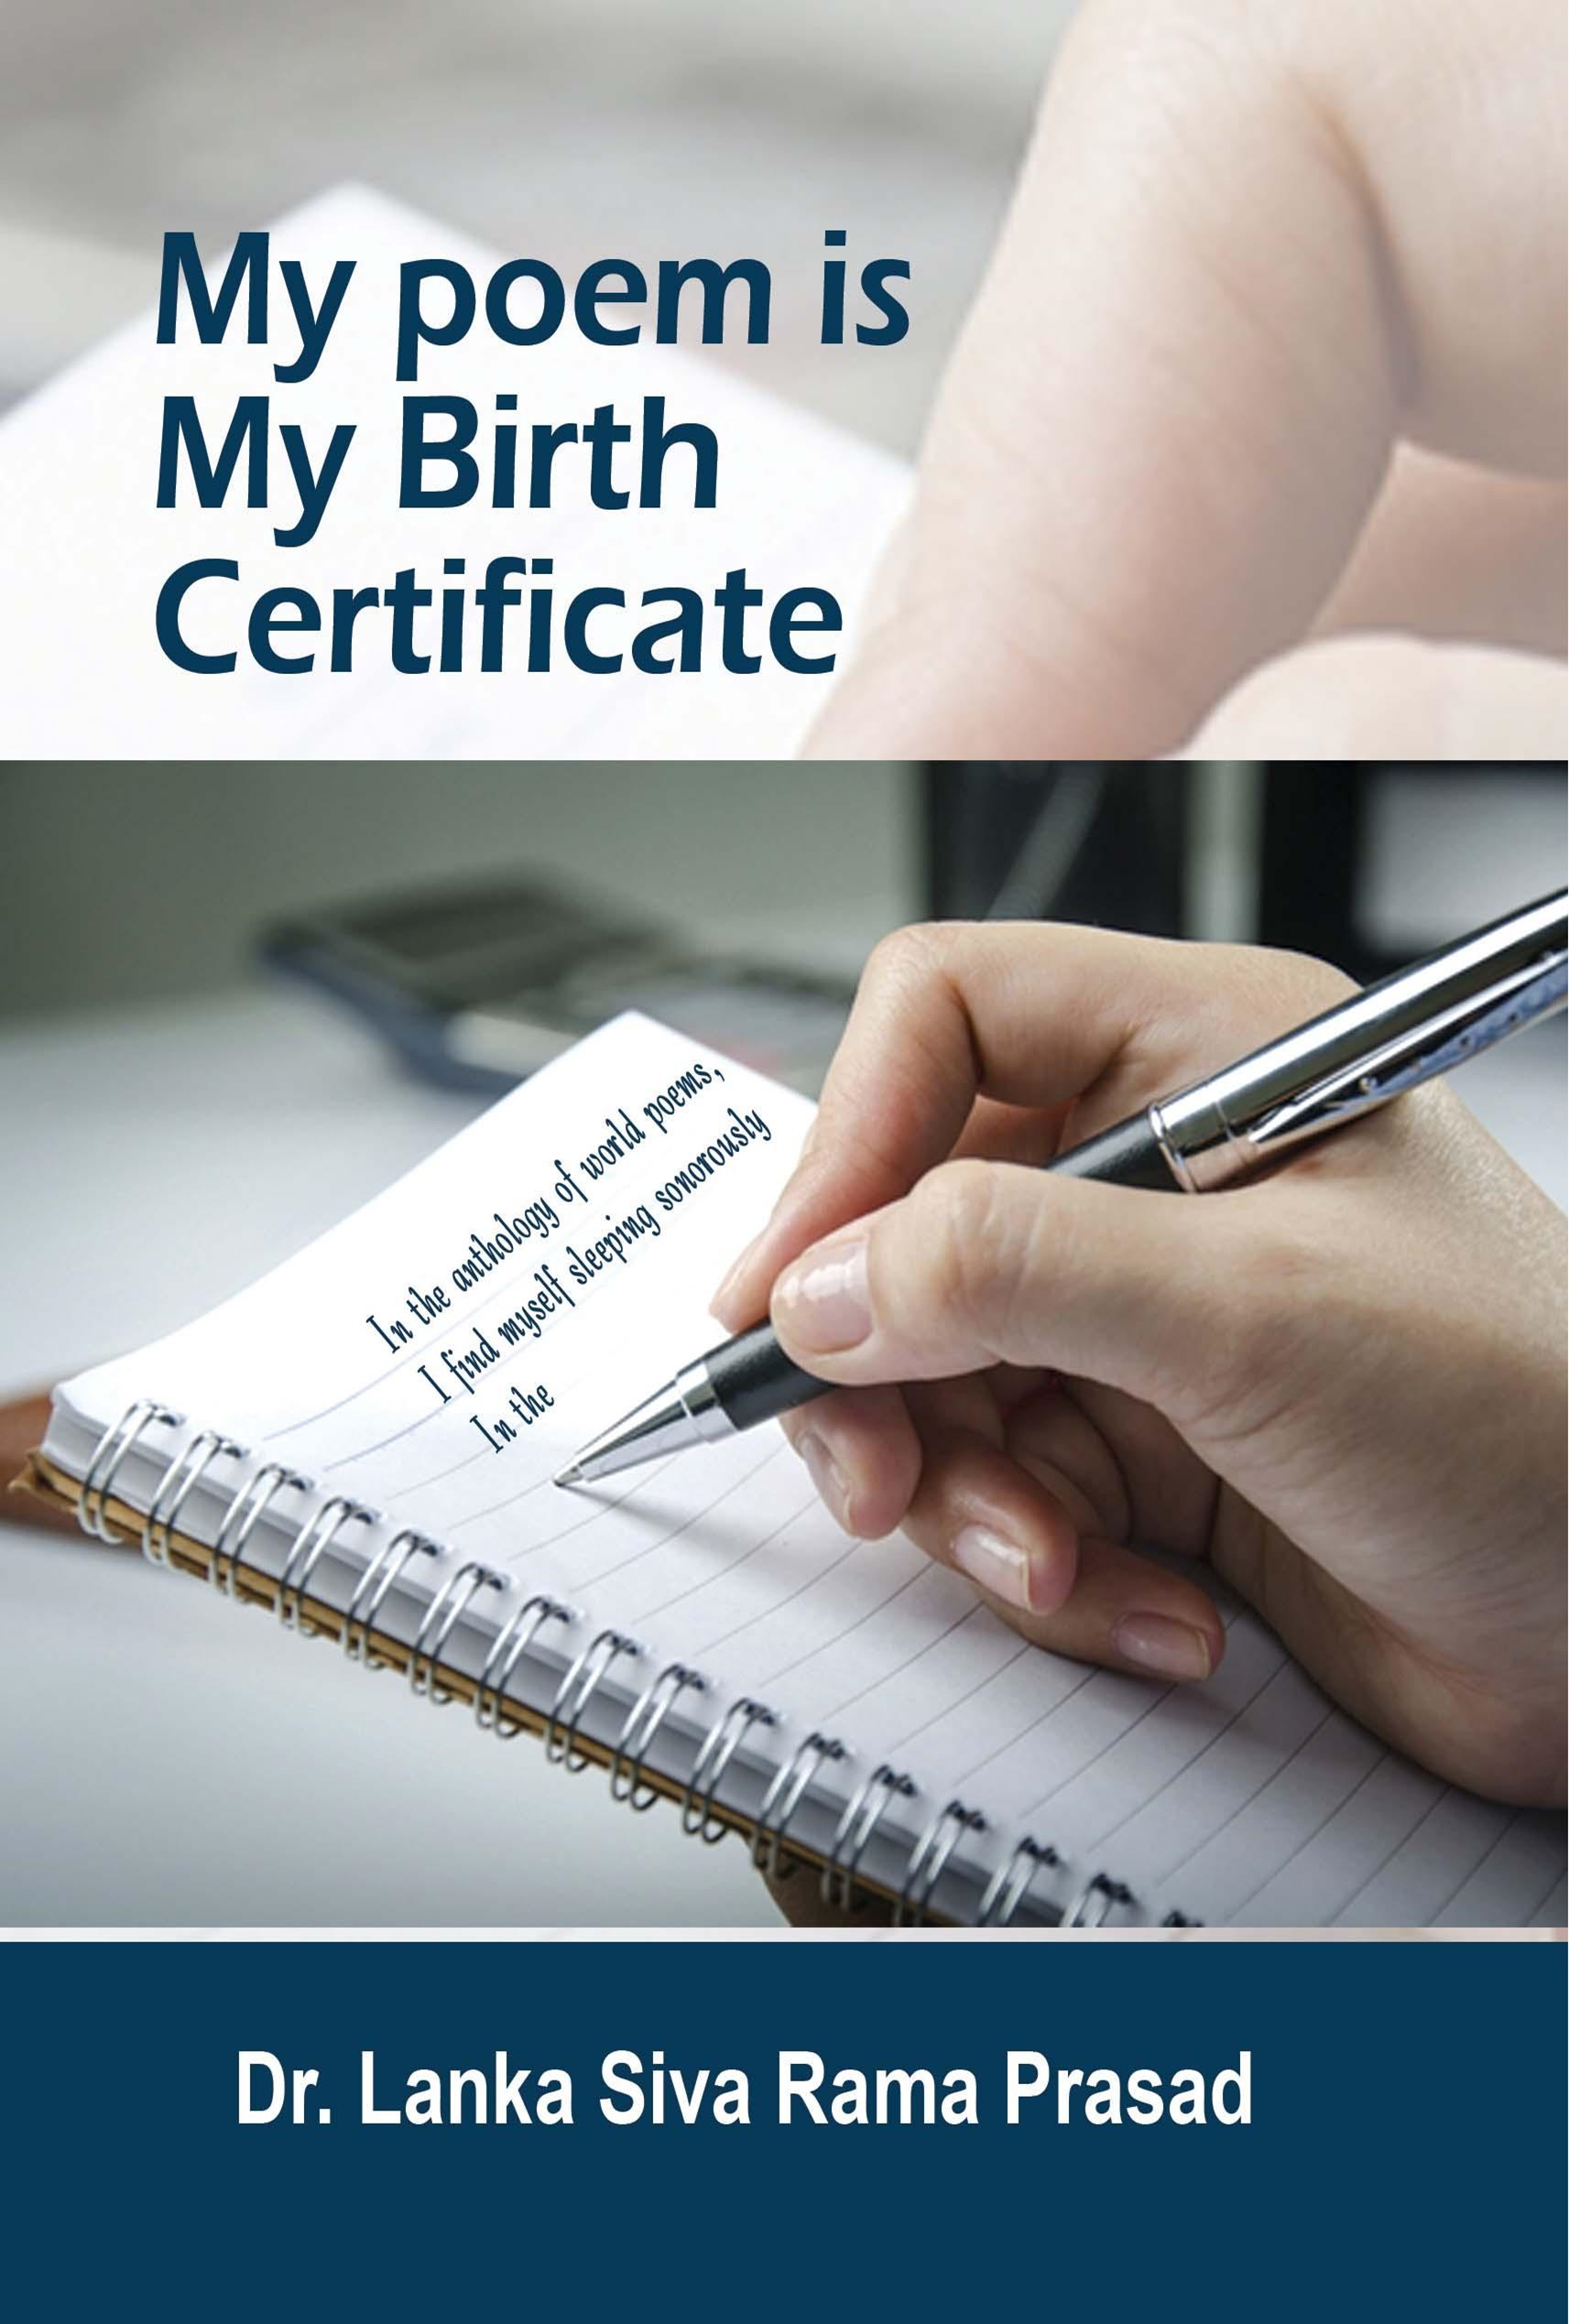 My Poem is My Birth Certificate